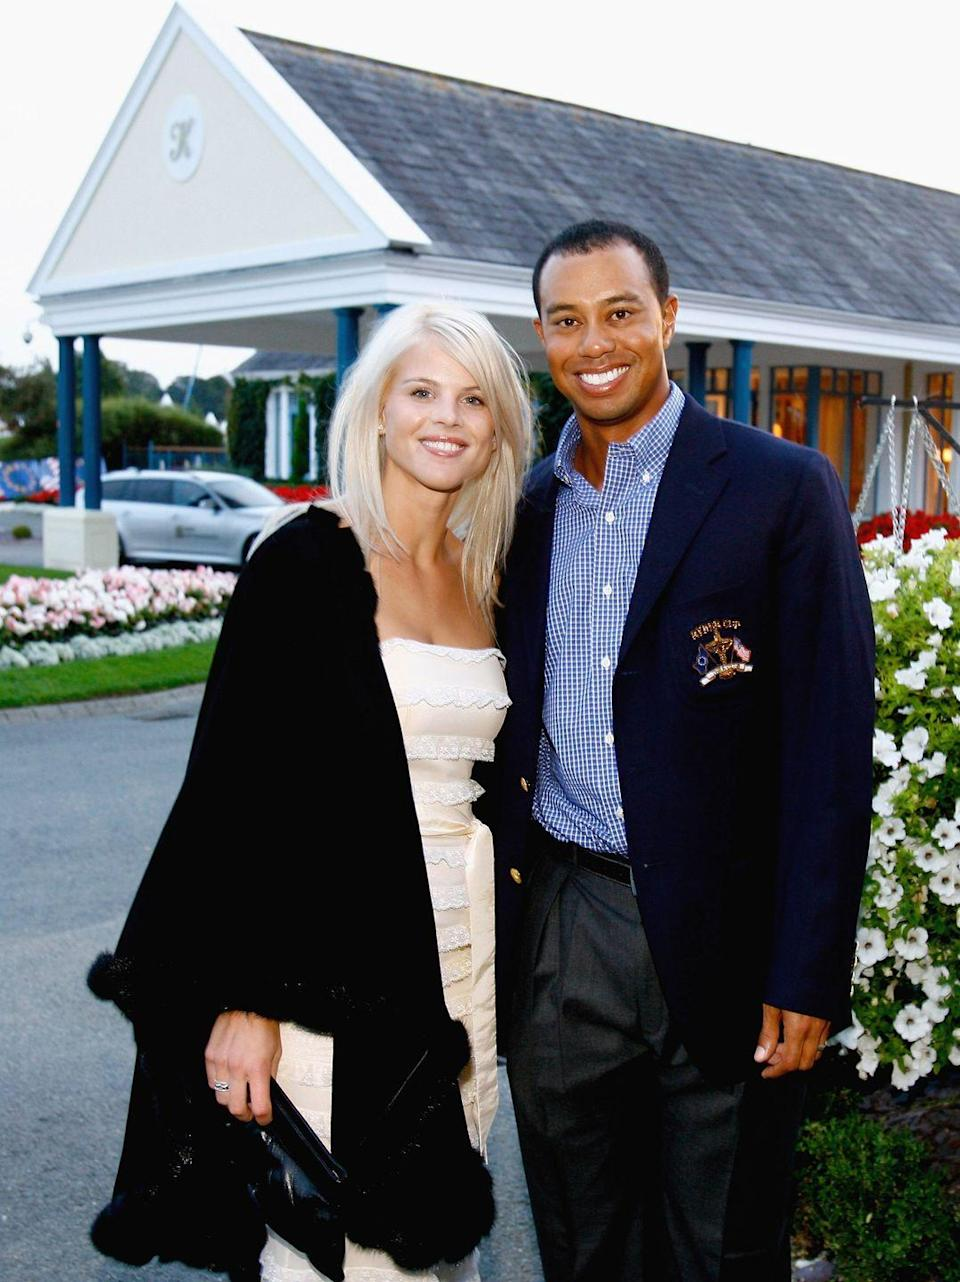 """<p><strong>Settlement:</strong> <a href=""""http://www.nydailynews.com/entertainment/gossip/tiger-woods-divorce-settlement-elin-nordegren-received-110m-payout-report-article-1.190484"""" rel=""""nofollow noopener"""" target=""""_blank"""" data-ylk=""""slk:$110 million"""" class=""""link rapid-noclick-resp"""">$110 million</a></p><p>Everything went downhill after Woods crashed the couple's Escalade into a tree outside their Florida home. He admitted to having multiple affairs and the two were <a href=""""http://www.businessinsider.com/tiger-woods-controversies-2017-5/?&_ga=2.148552308.211374963.1520018325-2101821851.1513801525/#things-started-to-go-downhill-for-woods-in-2008-a-year-before-his-famous-car-accident-that-year-woods-won-the-us-open-what-would-turn-out-to-be-his-final-major-championship-to-date-1"""" rel=""""nofollow noopener"""" target=""""_blank"""" data-ylk=""""slk:divorced in 2010 after six years together"""" class=""""link rapid-noclick-resp"""">divorced in 2010 after six years together</a>, and Nordegren walked away with $110 million from it.</p>"""